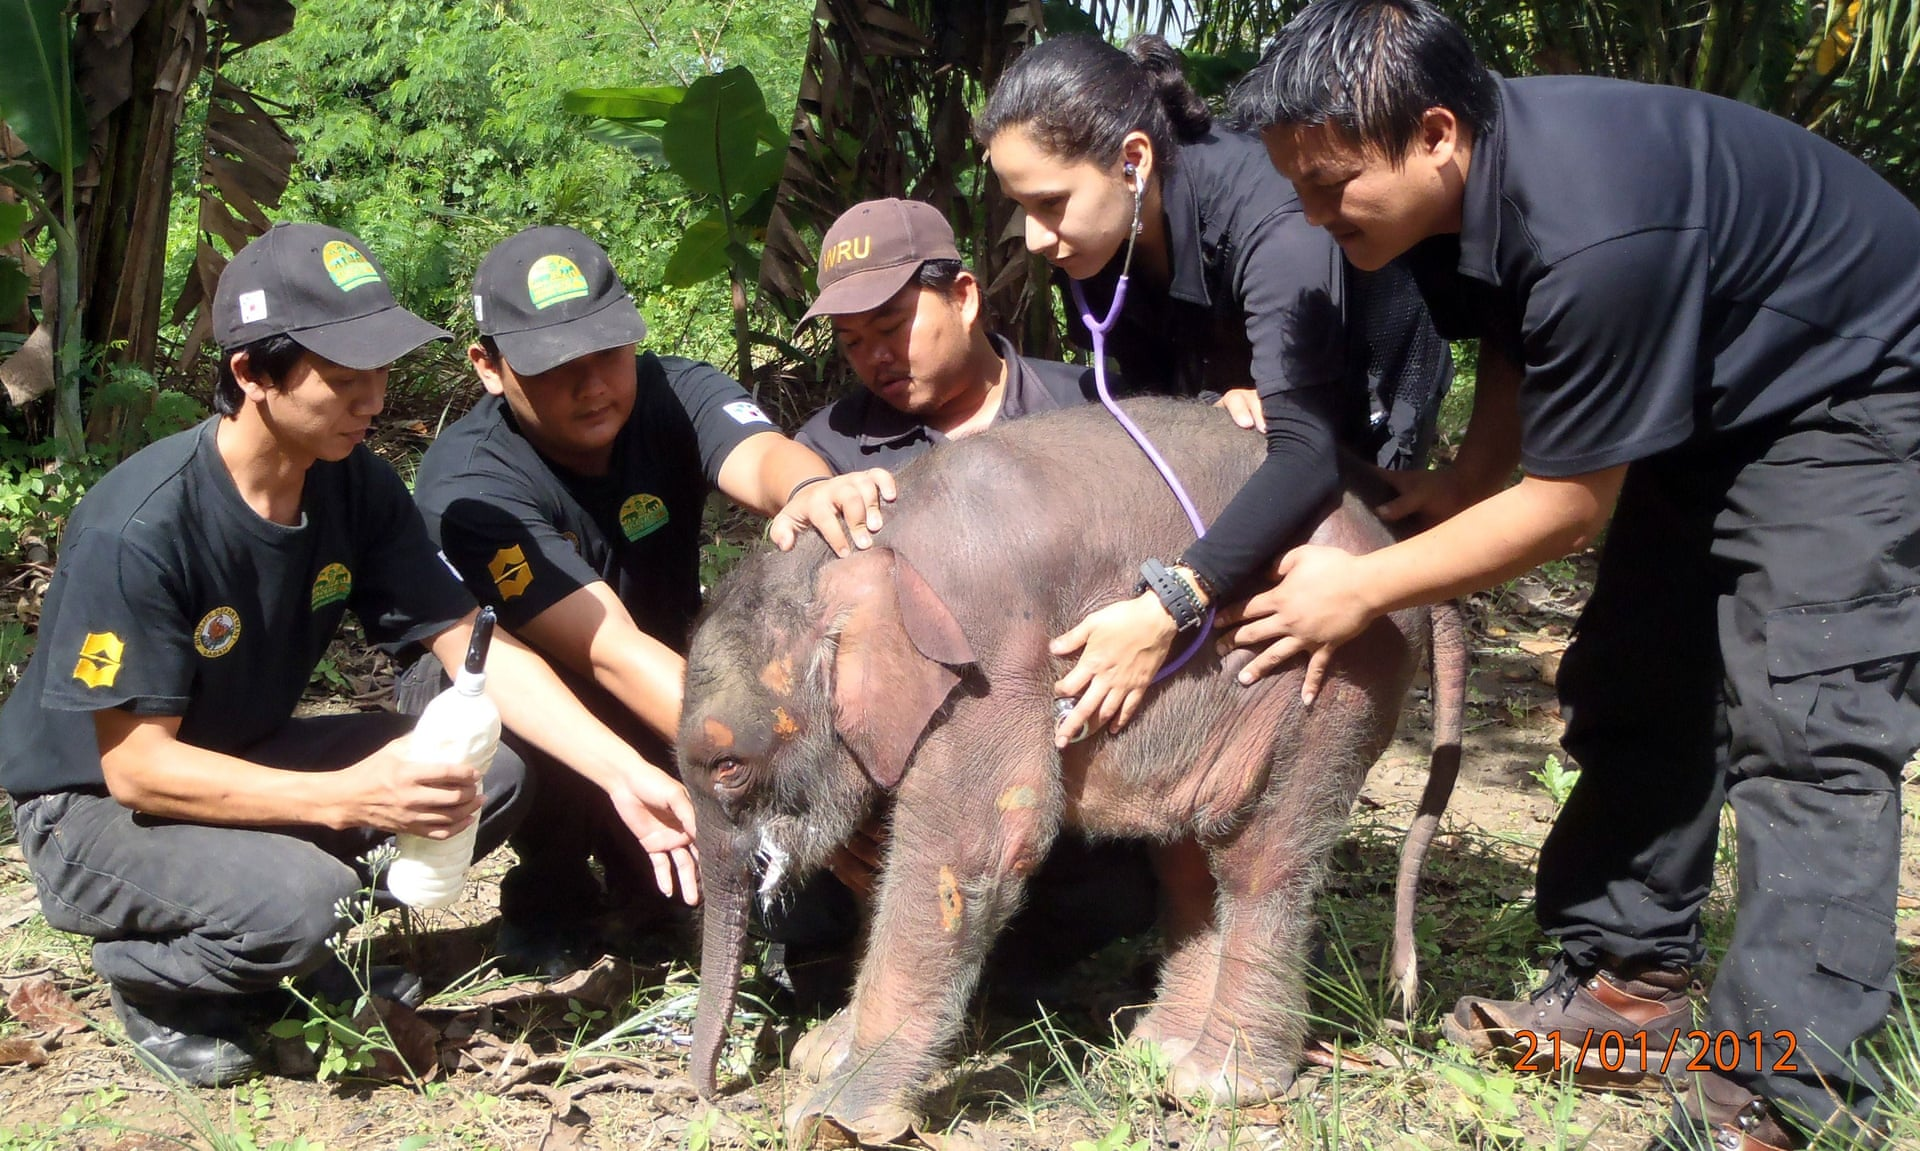 World's smallest elephants killed for ivory in Borneo | Environment | The Guardian